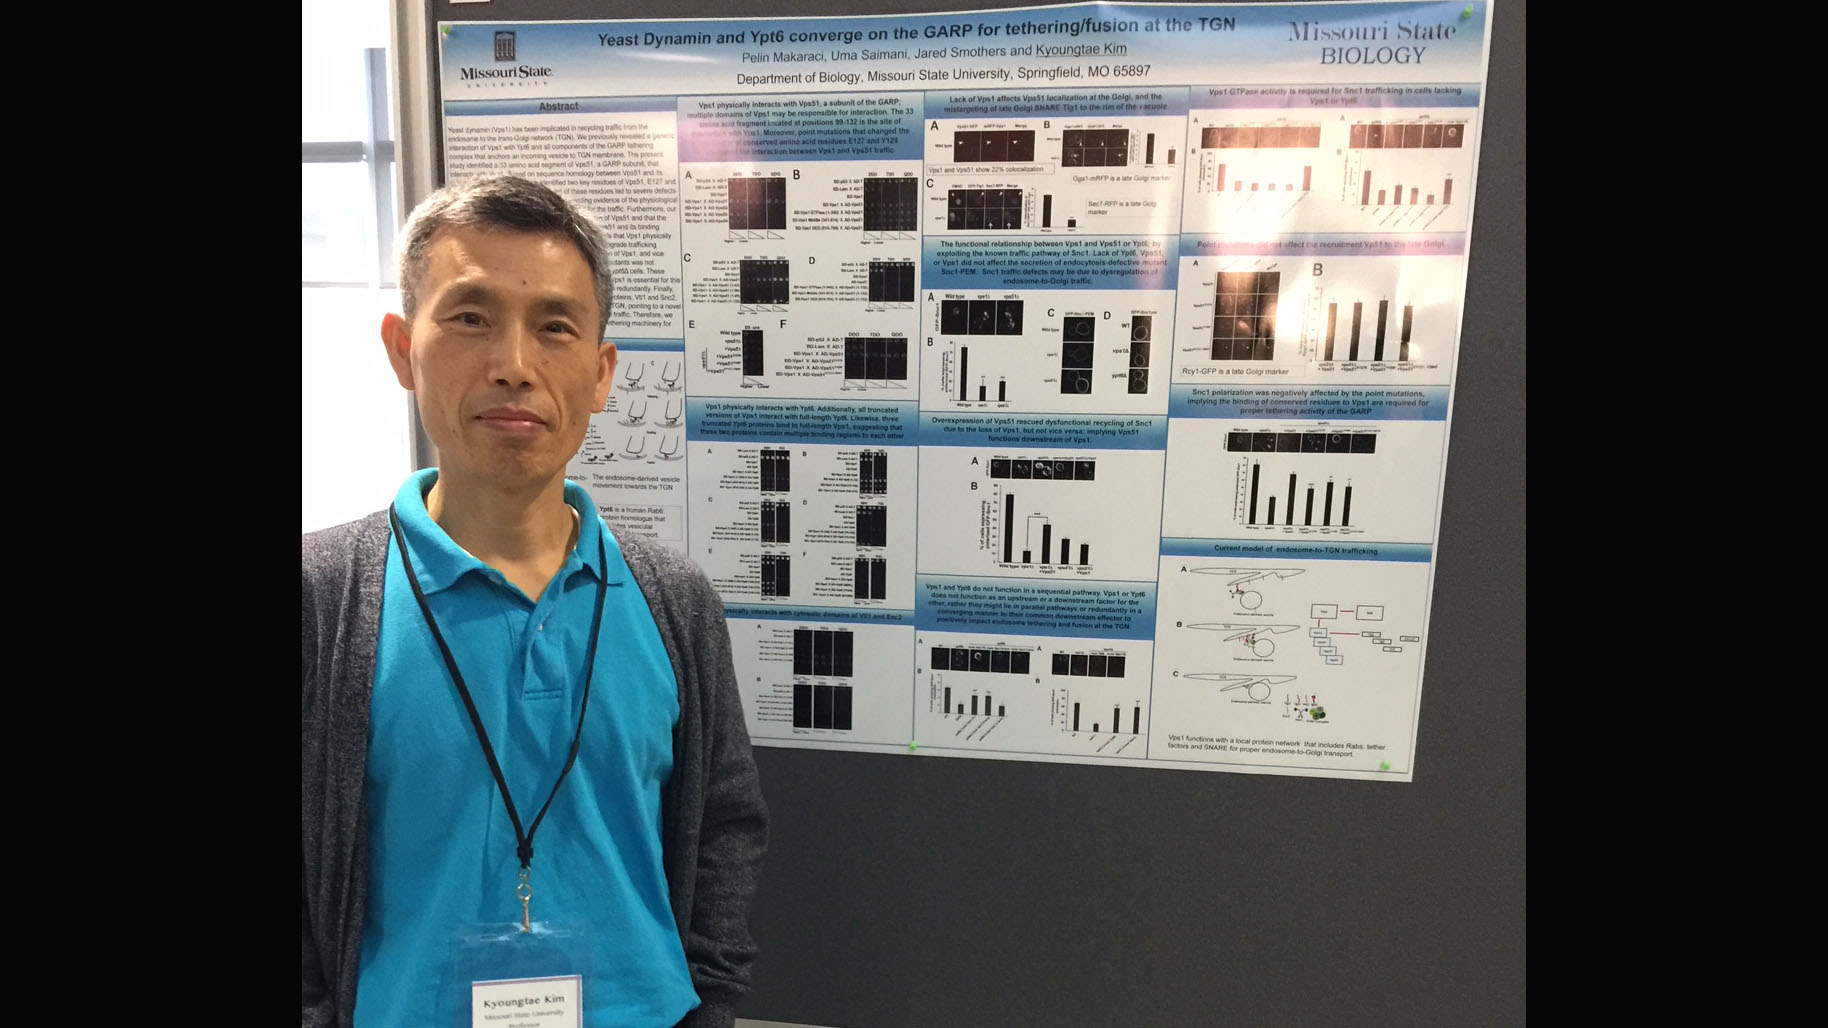 Dr. Kim with his poster